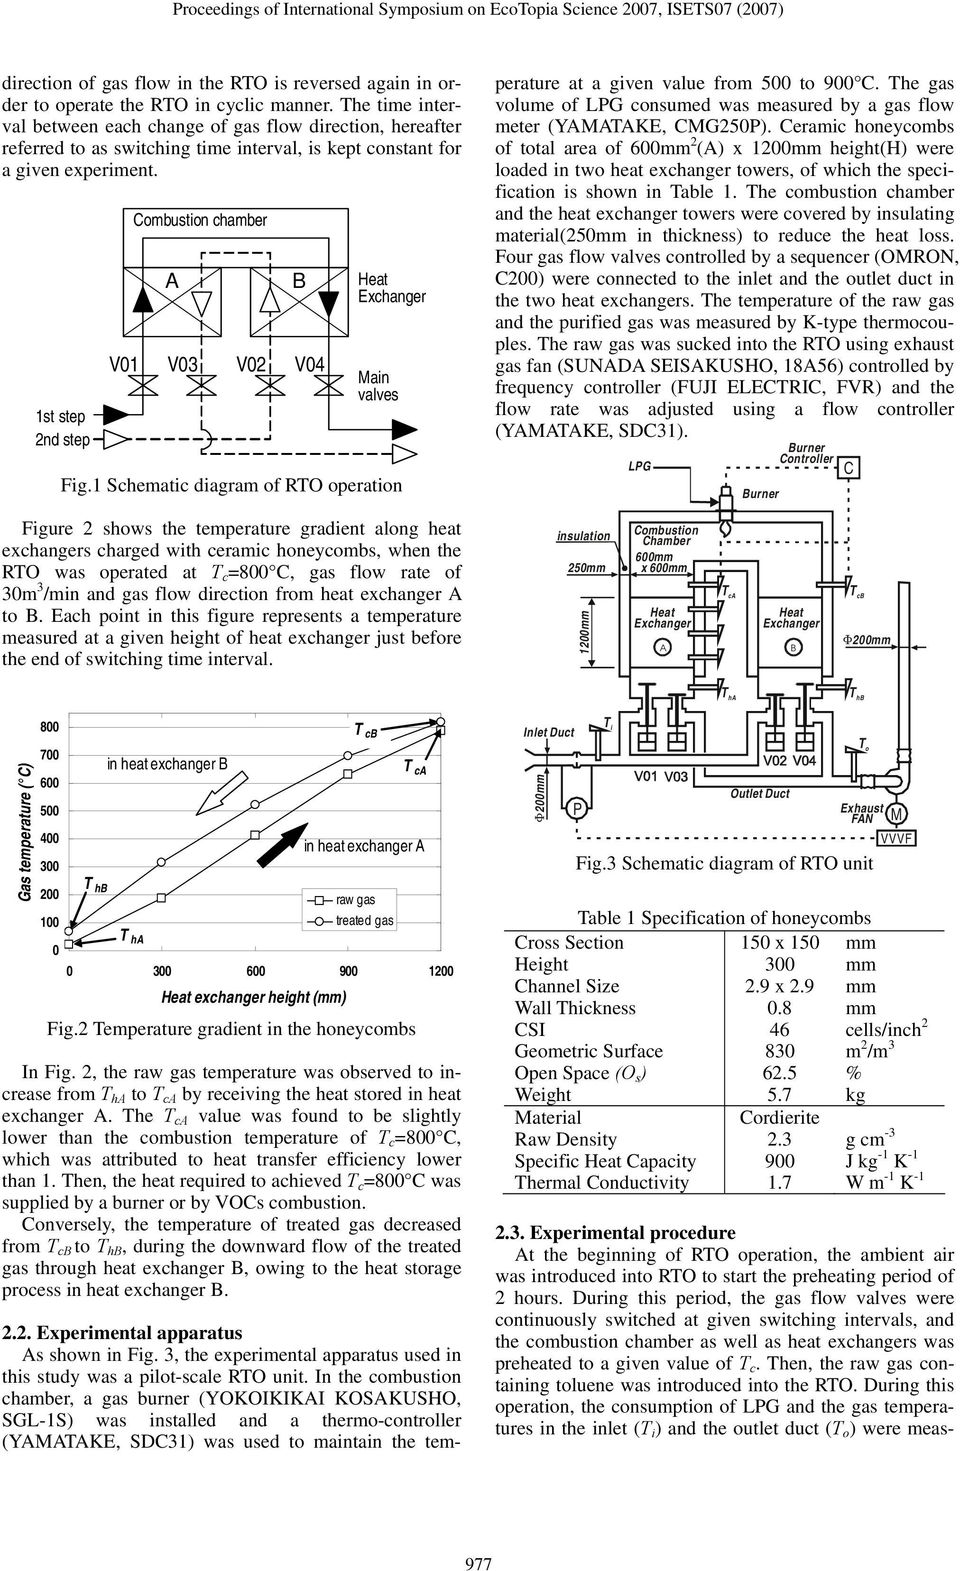 1st step 2nd step V01 Combustion chamber A B V03 V02 V04 Main valves Fig.1 Schematic diagram of RTO operation 2.2. Experimental apparatus As shown in Fig.